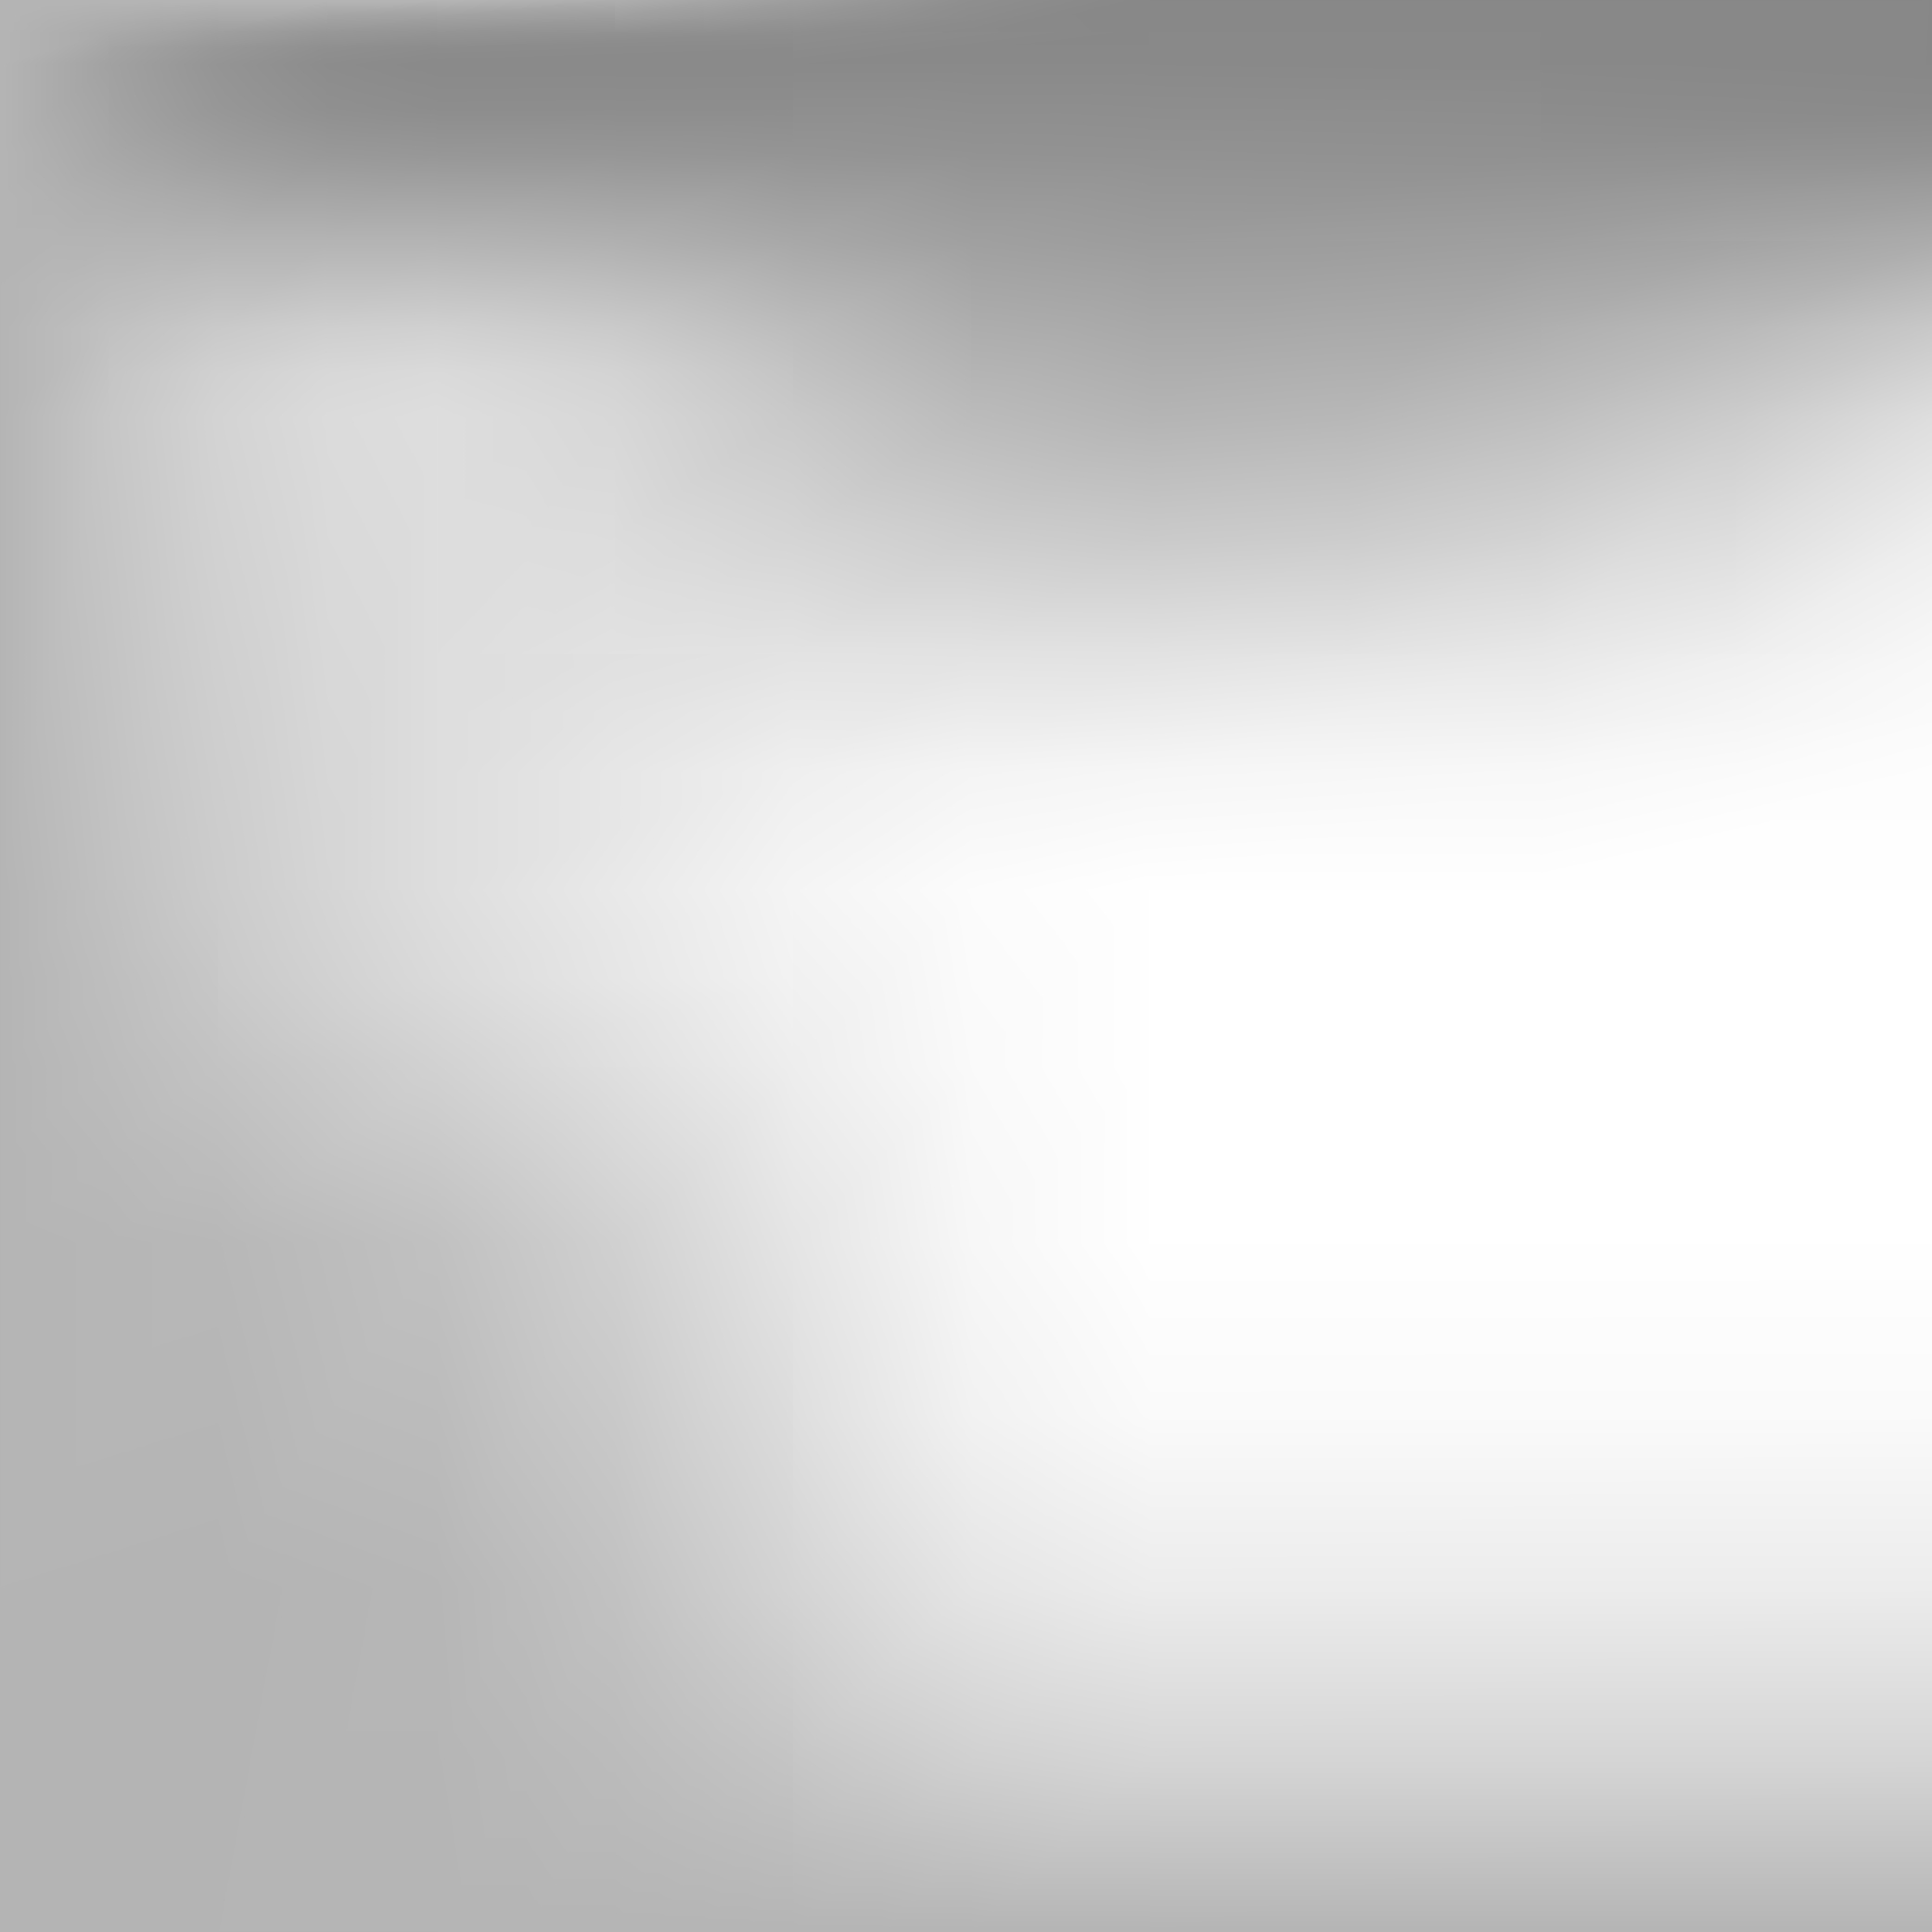 Blurred silver effect holographic gradient background example image 15